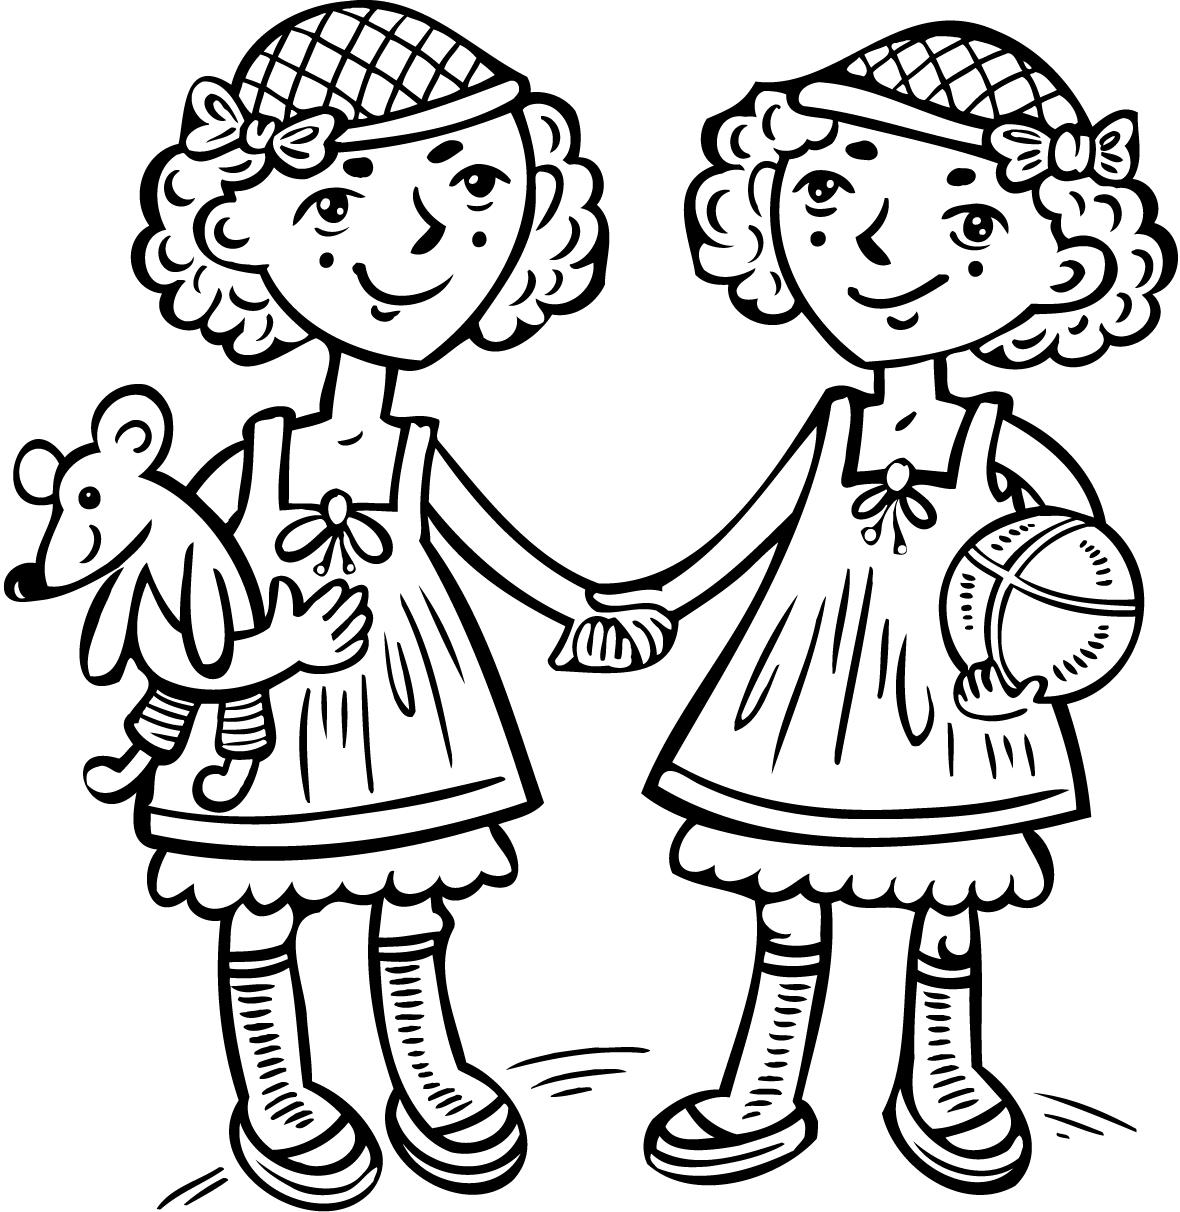 1180x1212 Cute Love Coloring Page Of Two Girls